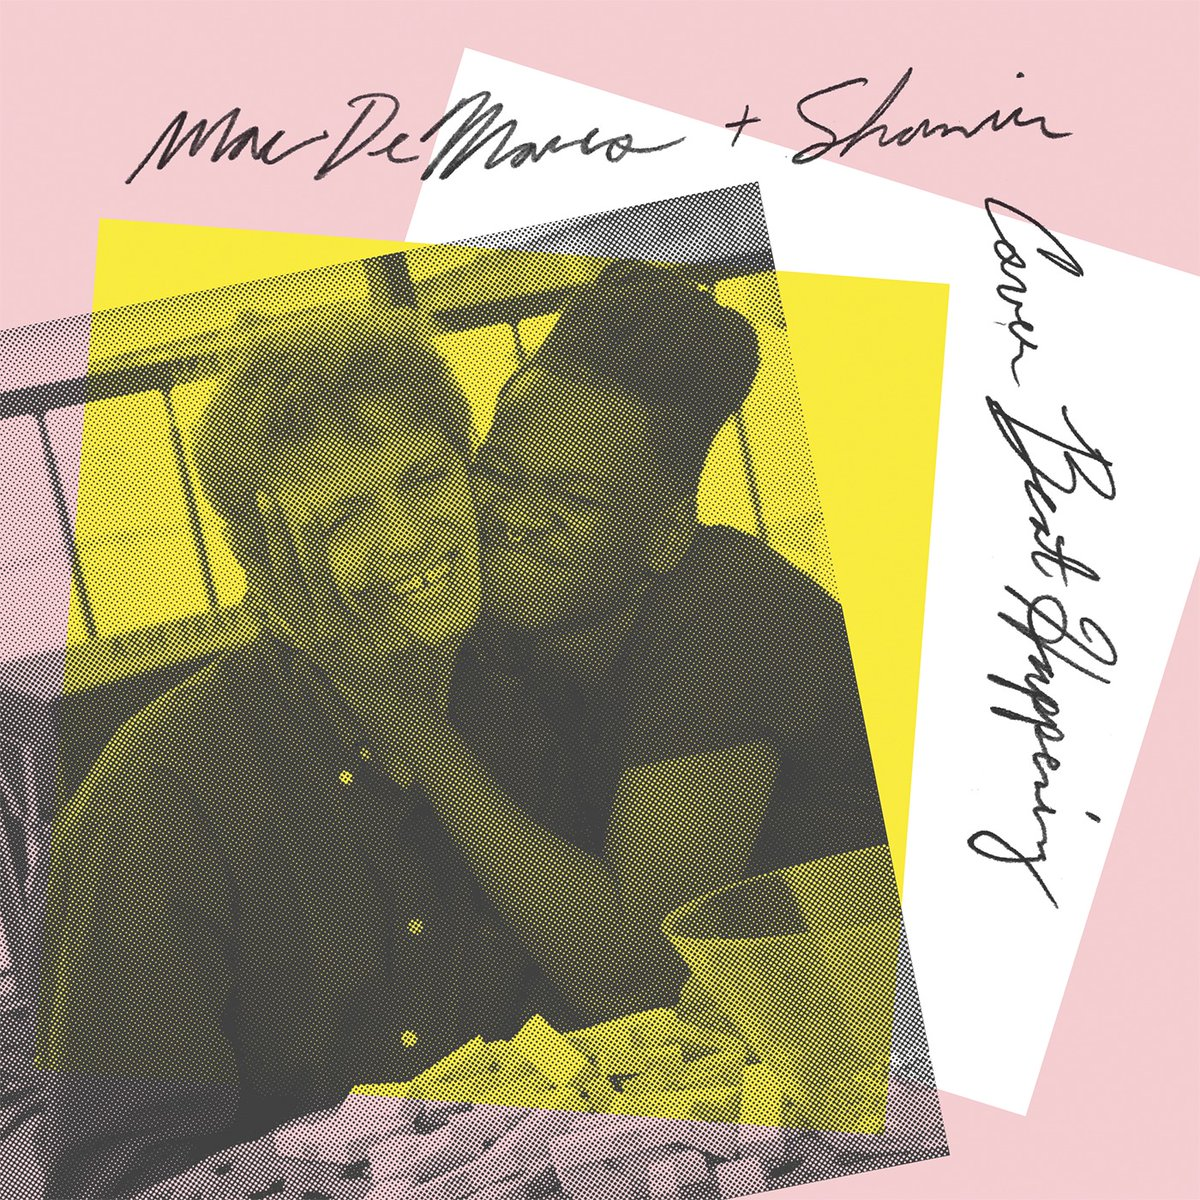 "Mac Demarco + Shamir: Beat Happening Covers Vinyl 7"" (Record Store Day)"